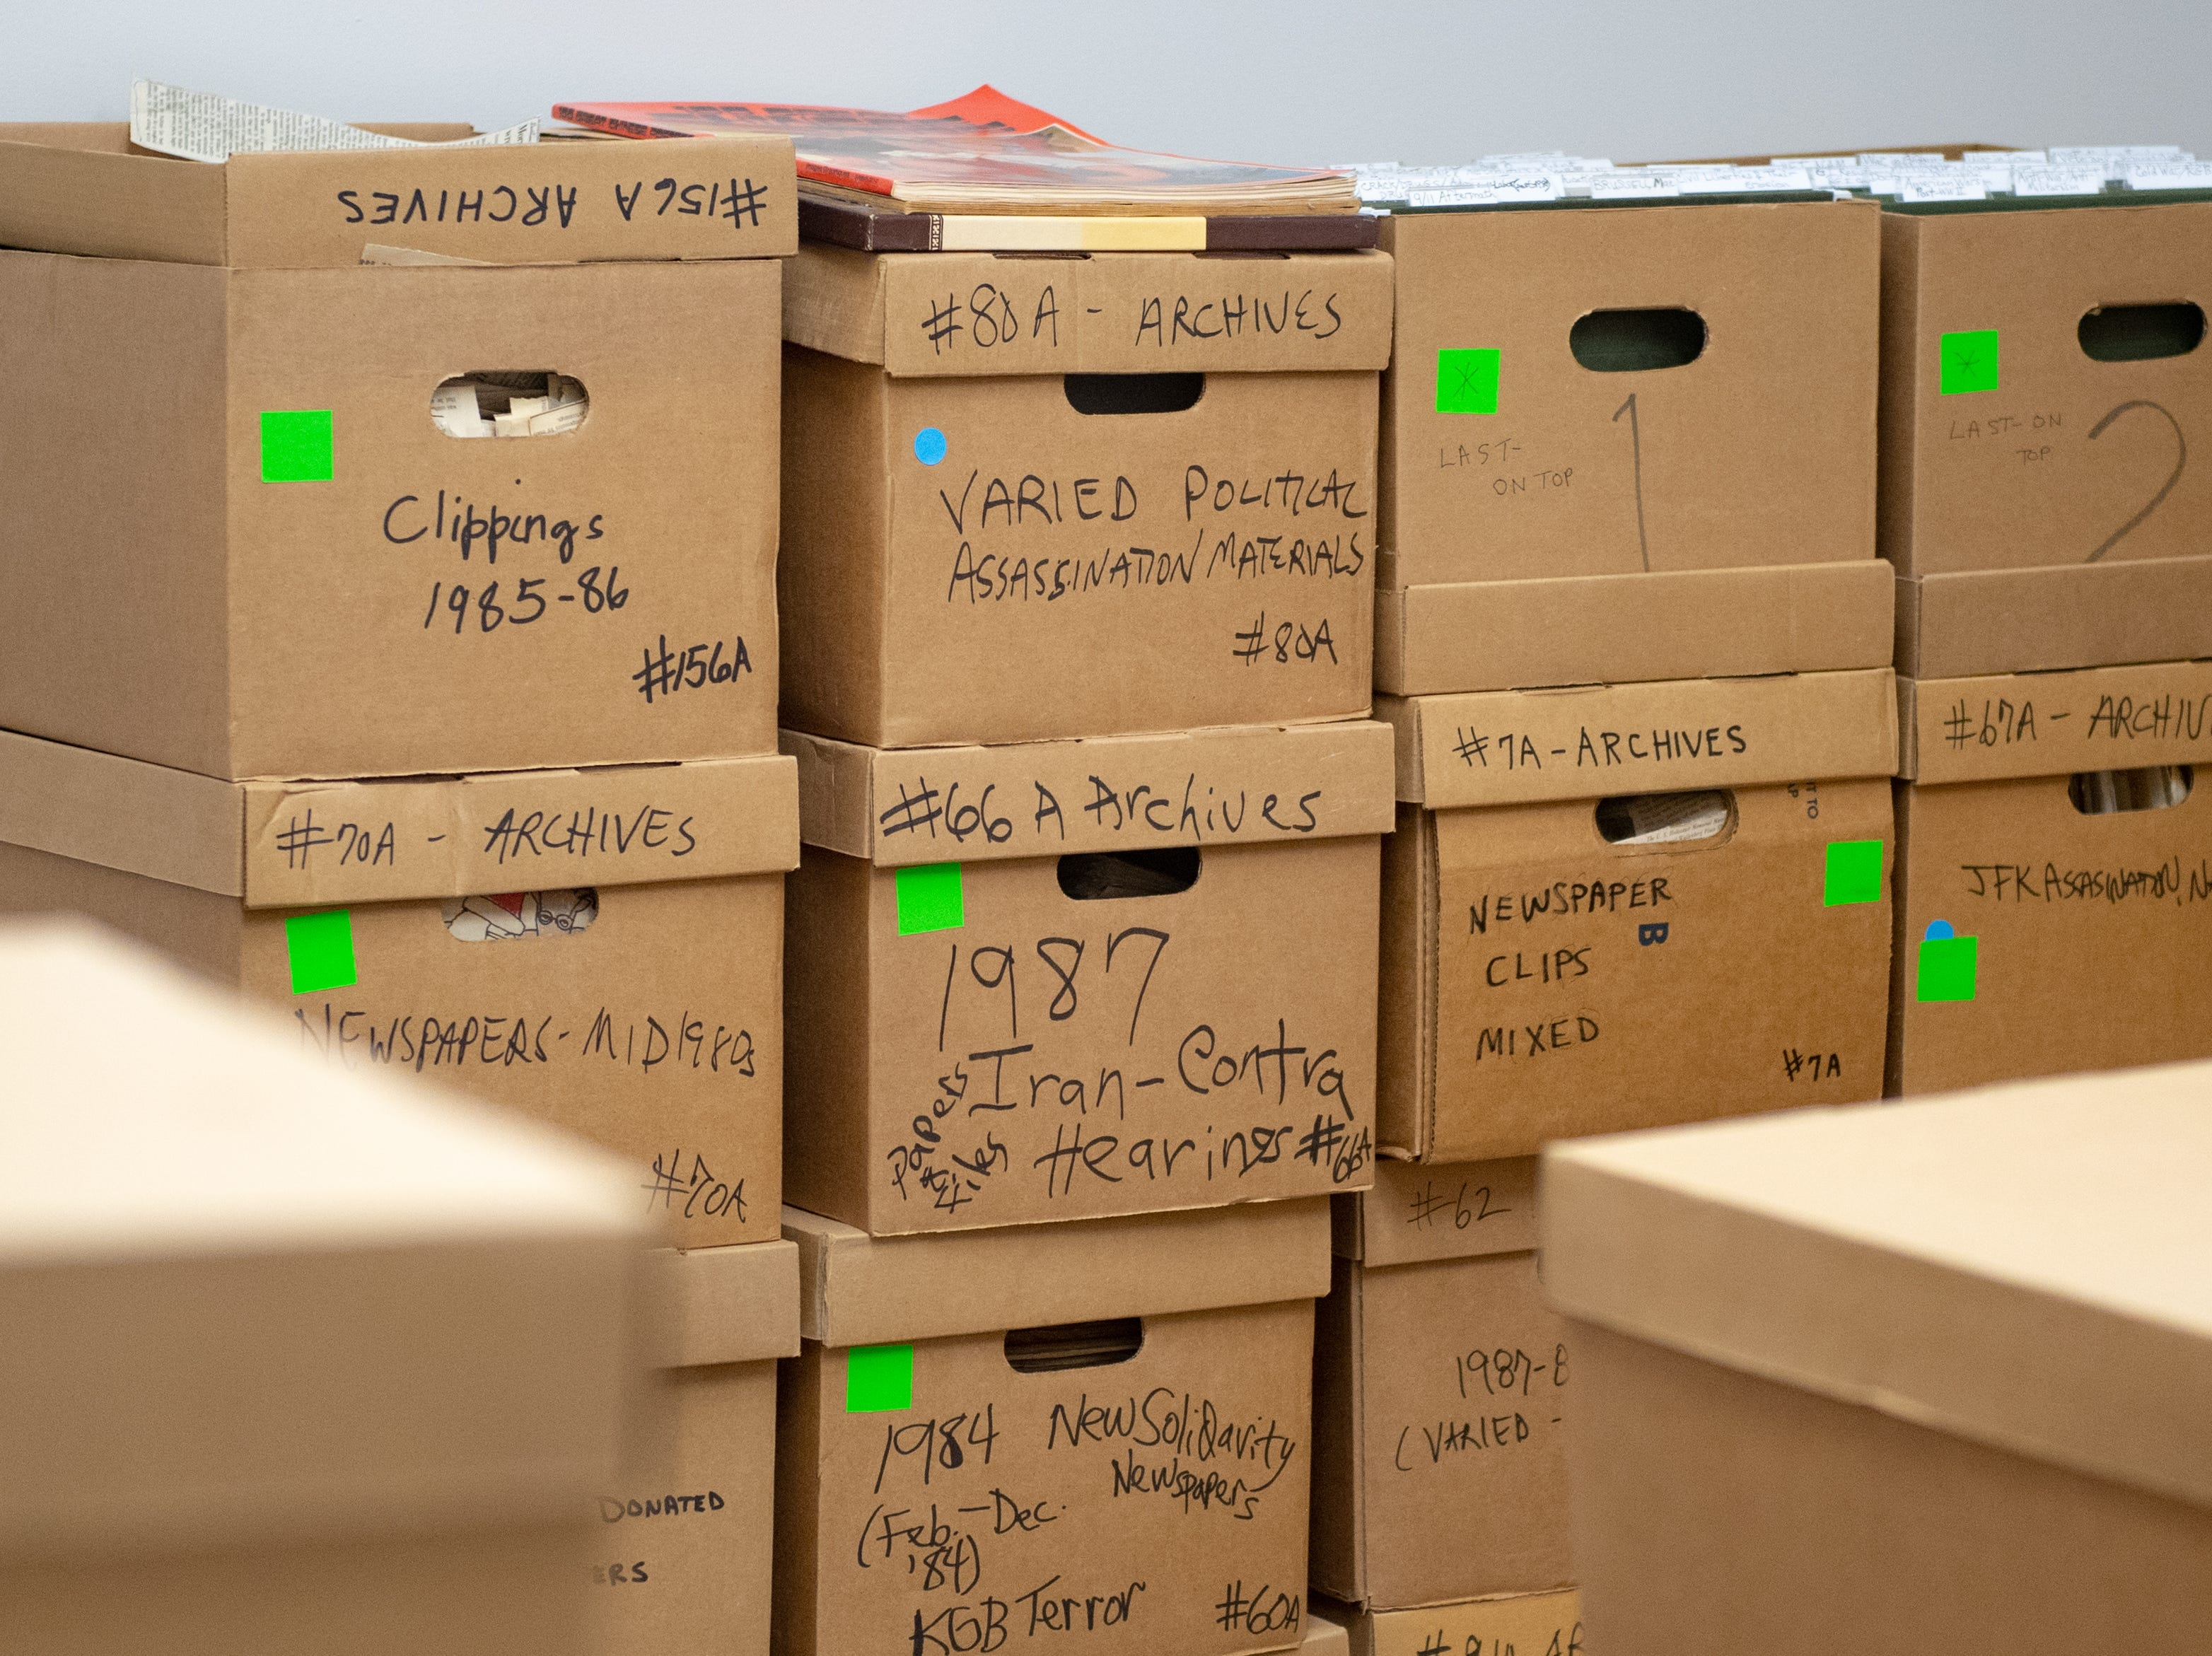 Initially after Judge's death, Tenenoff moved all of the materials to a storage unit in northern Virginia. She later decided to move everything to York, so it would be closer to where she lived.